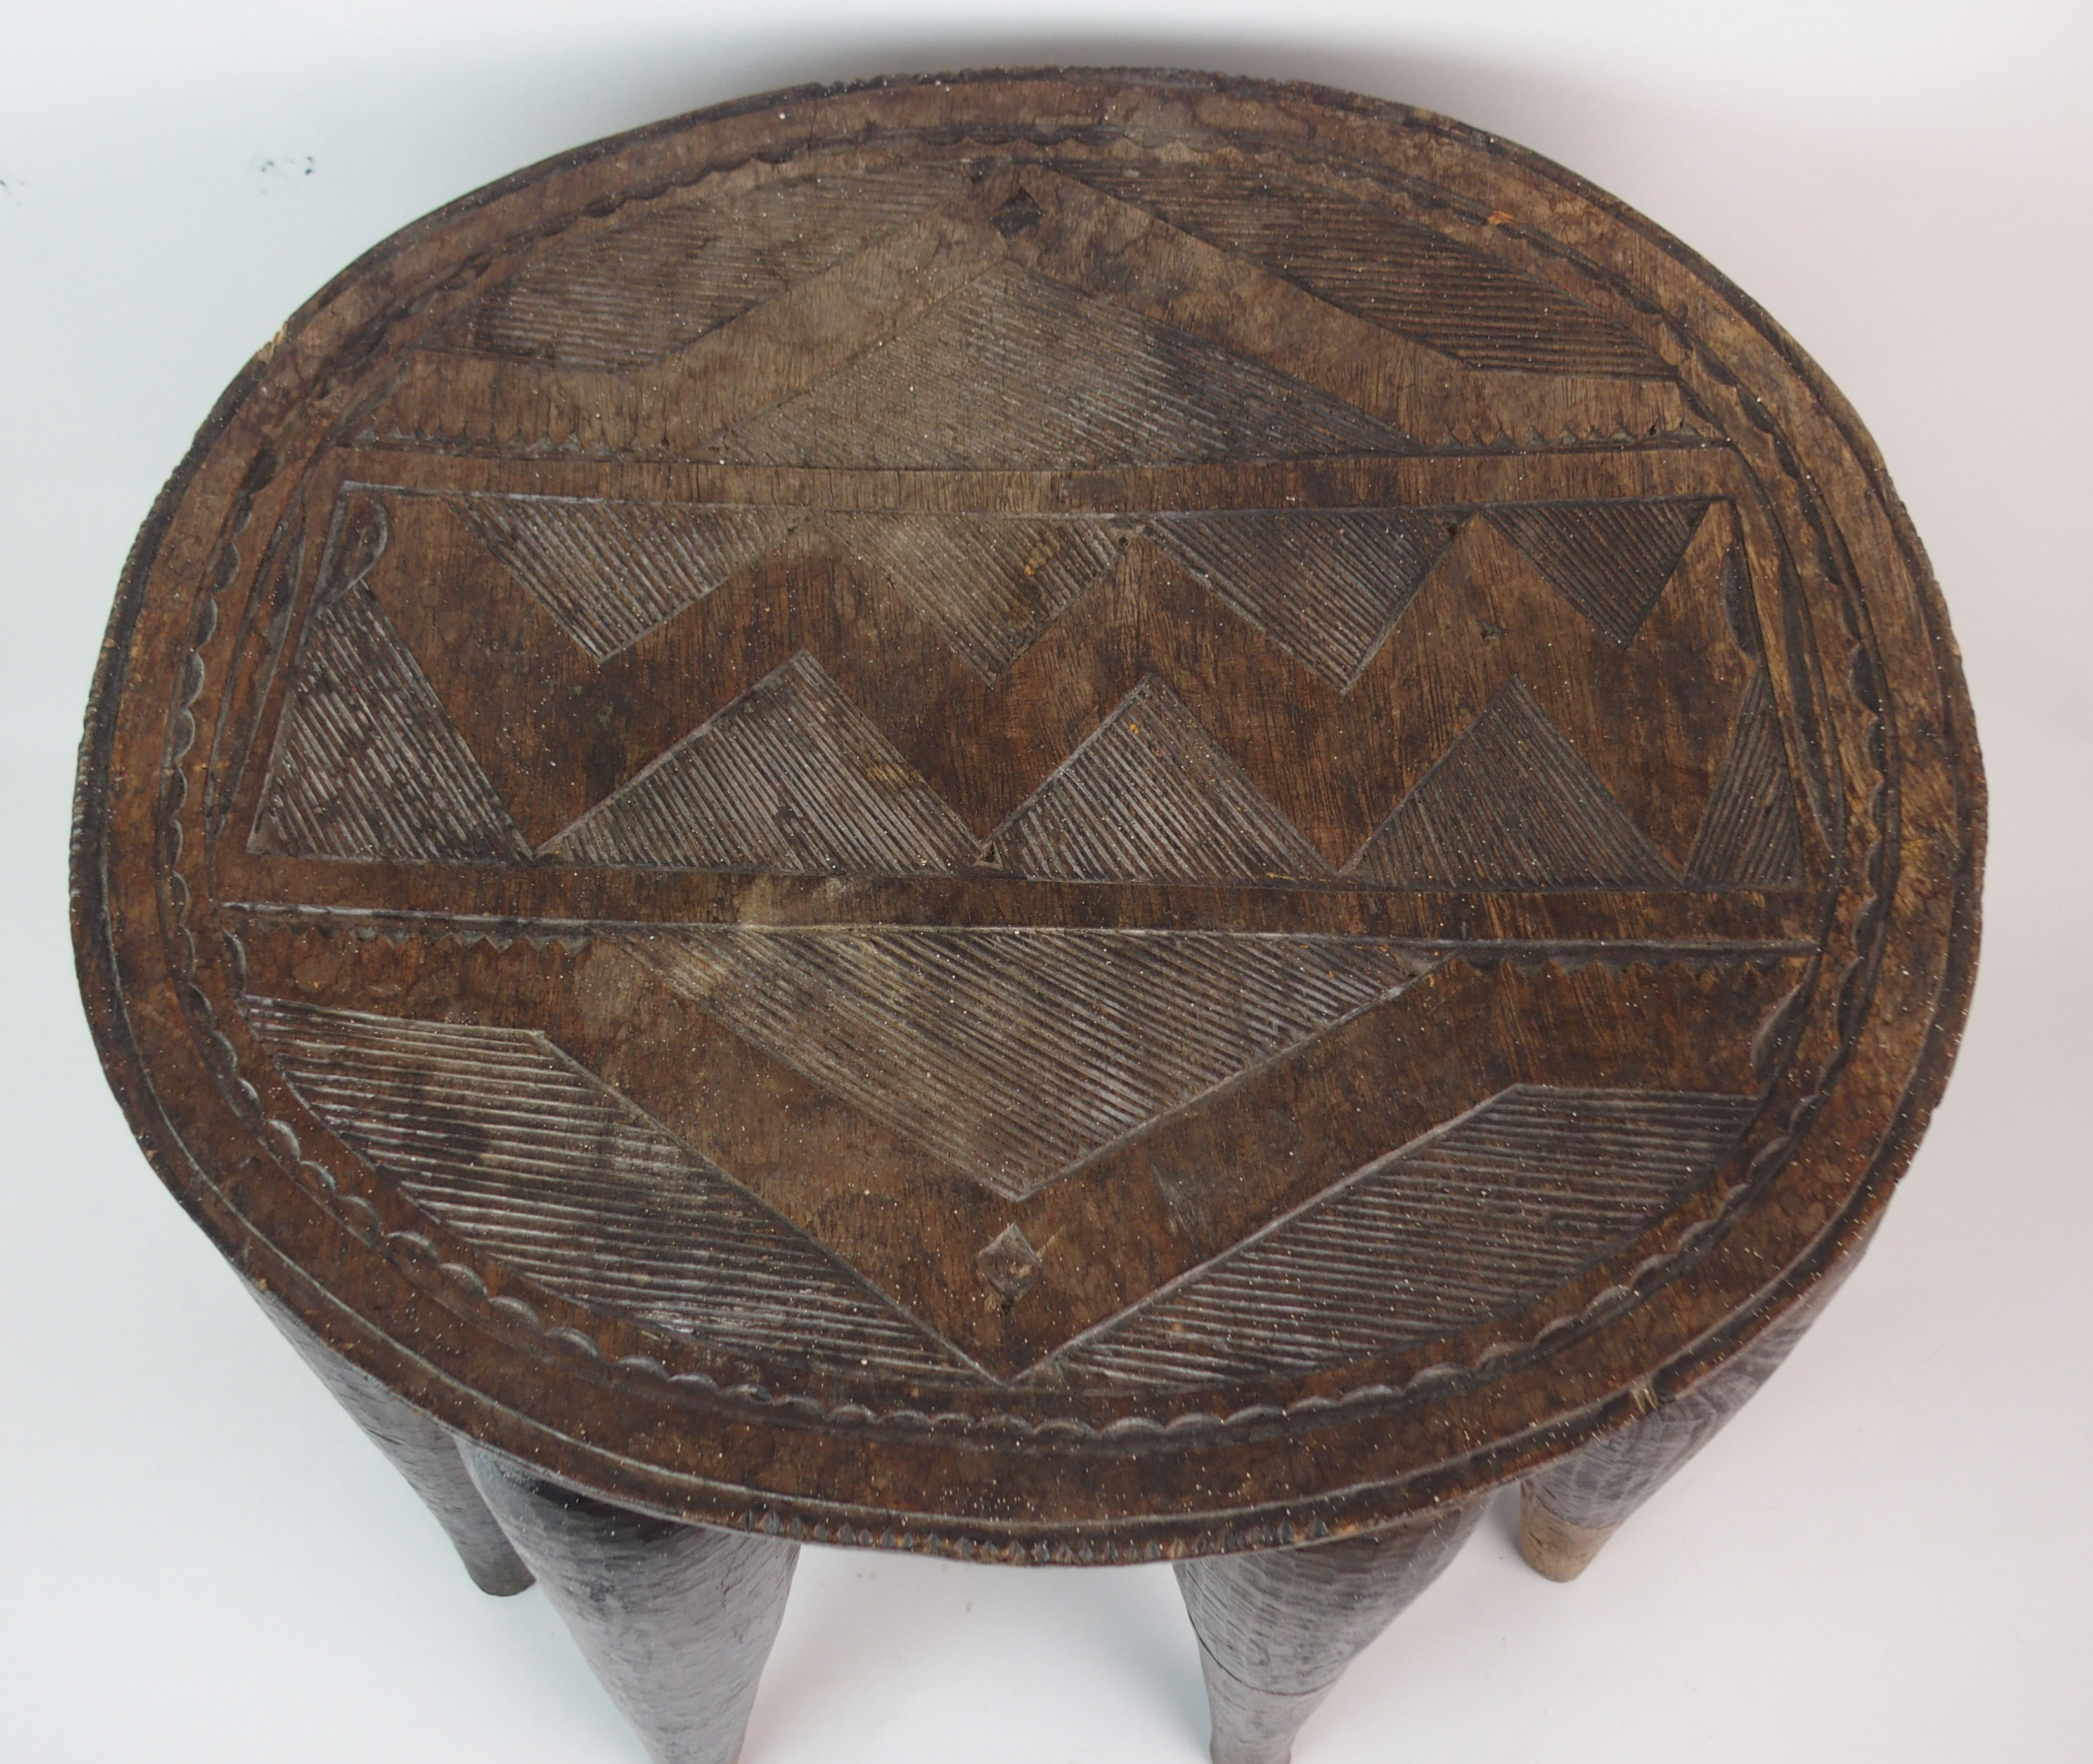 Lot 29 - AN AFRICAN HARDWOOD CIRCULAR STOOL the seat carved with geometric patterns and on ten tapering